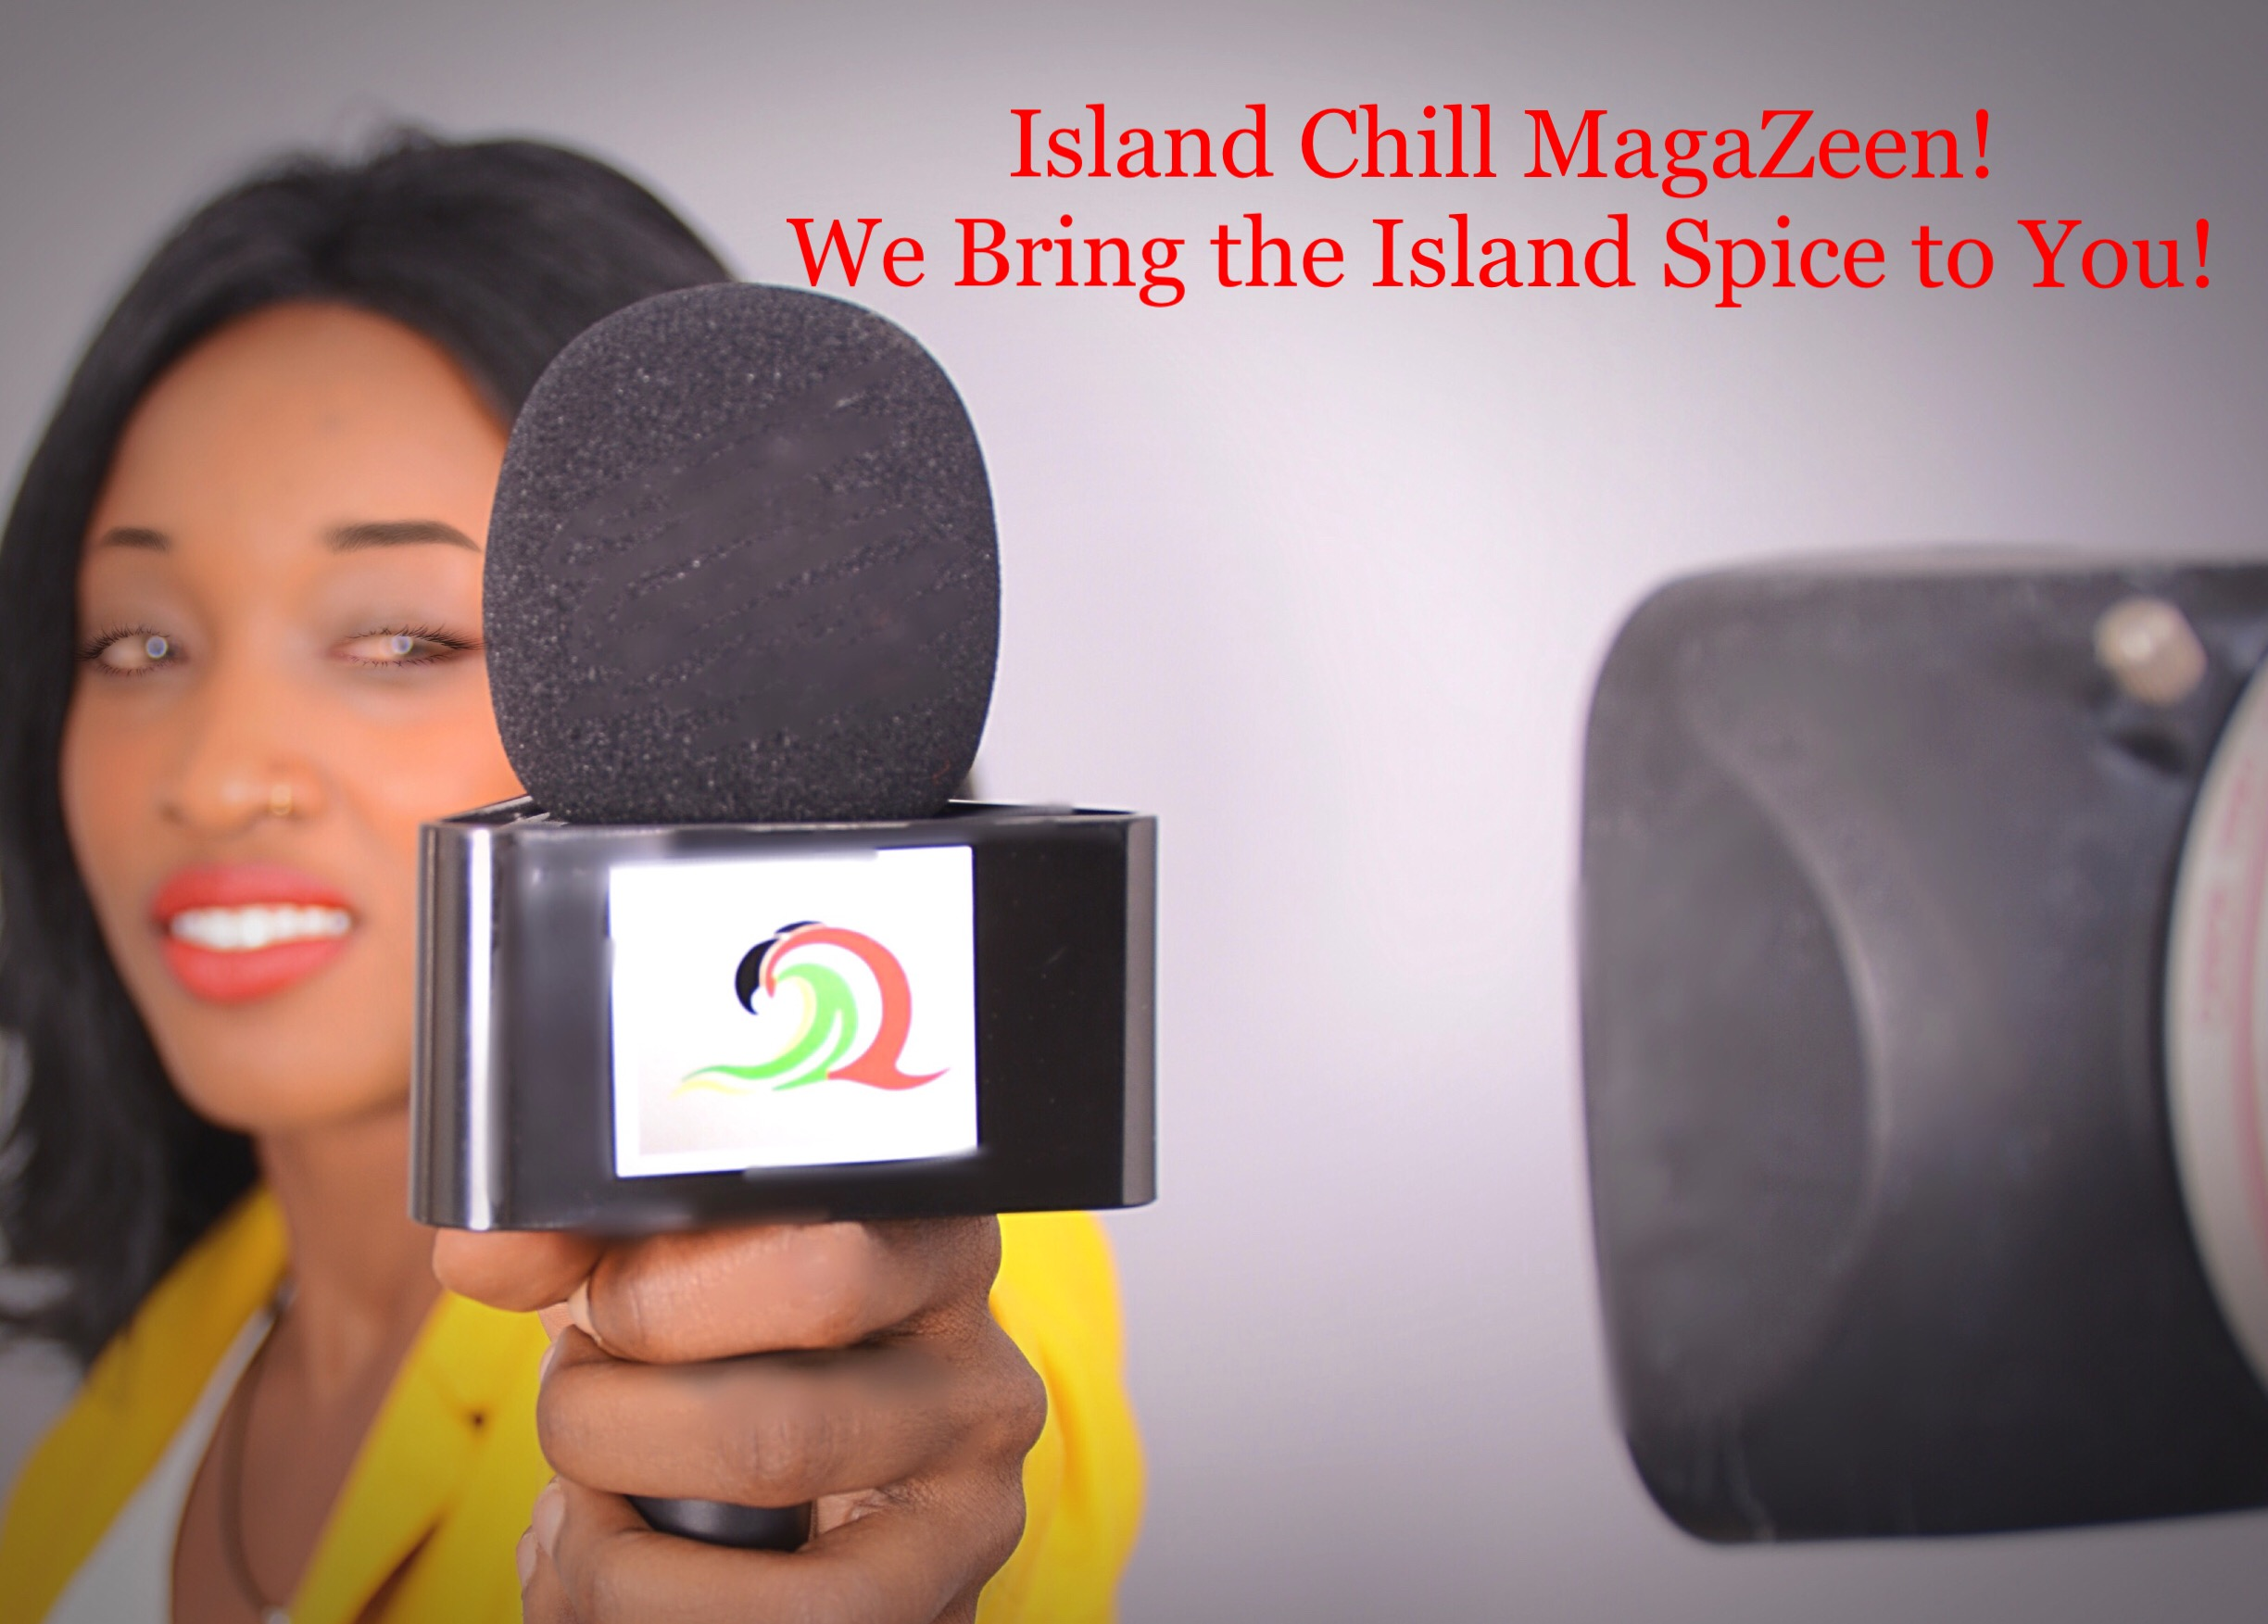 Island Chill MagaZeen!